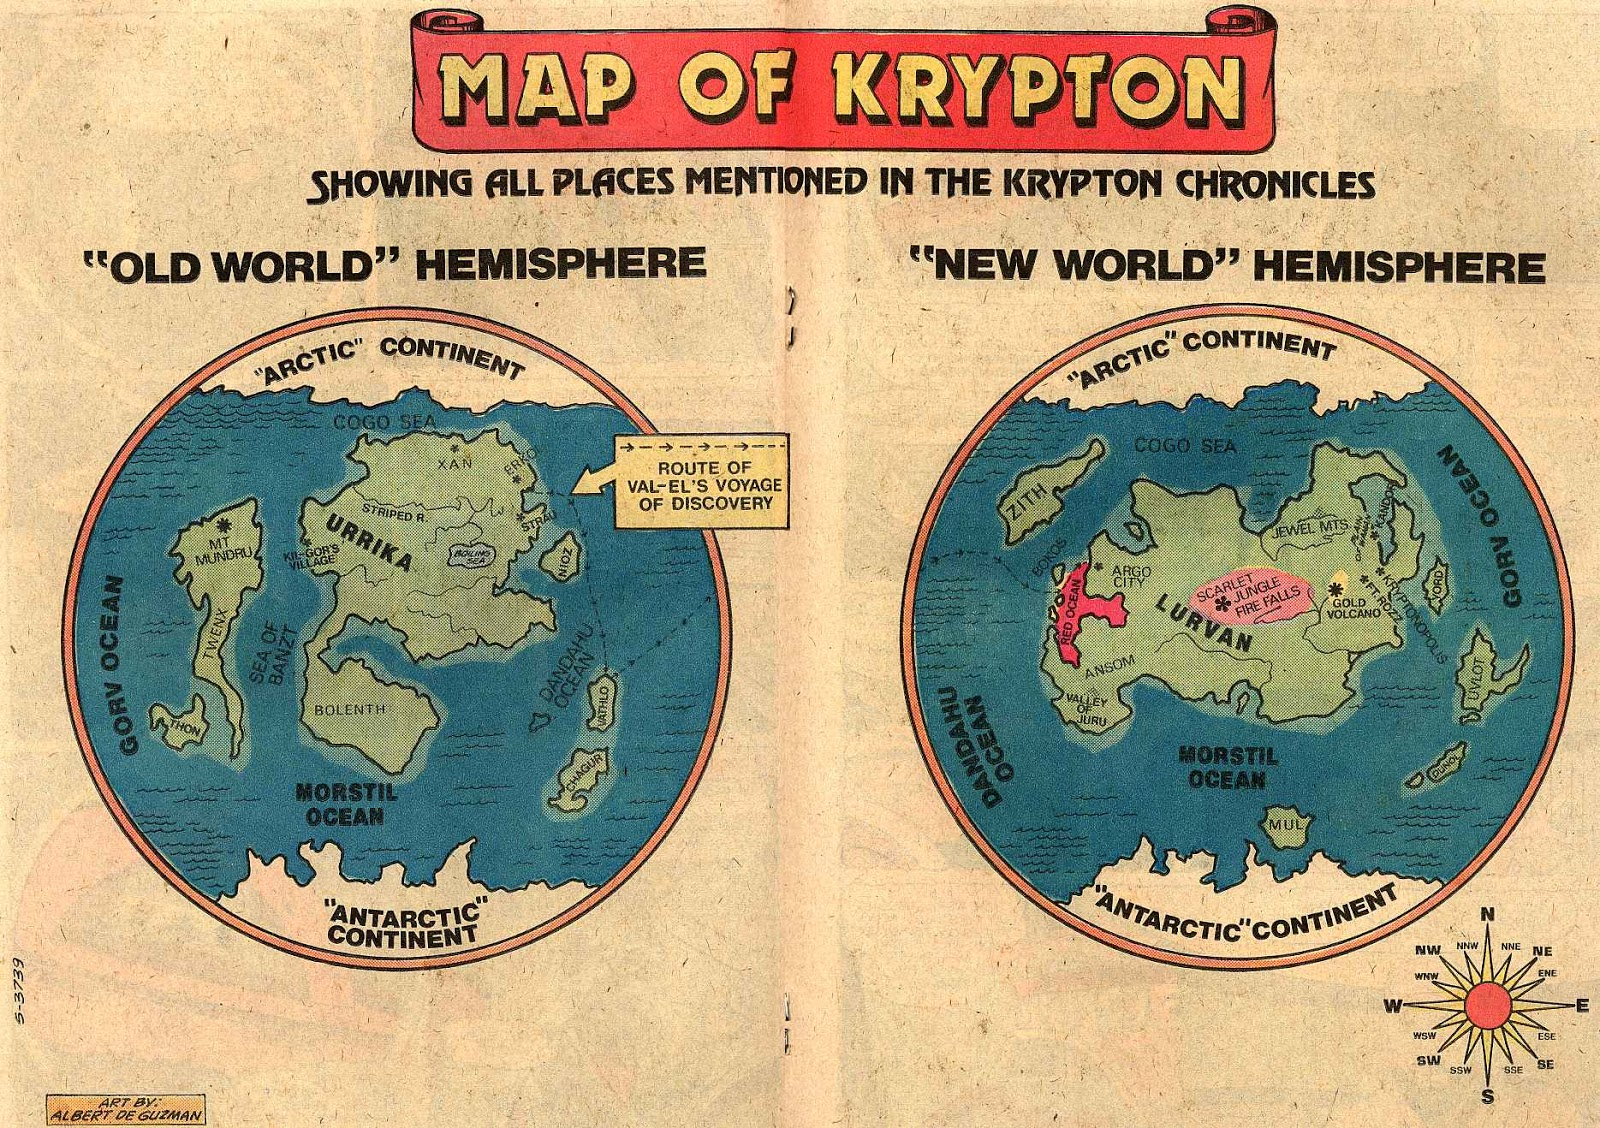 DC Comics of the 1980s: 1981 - Map of Krypton on